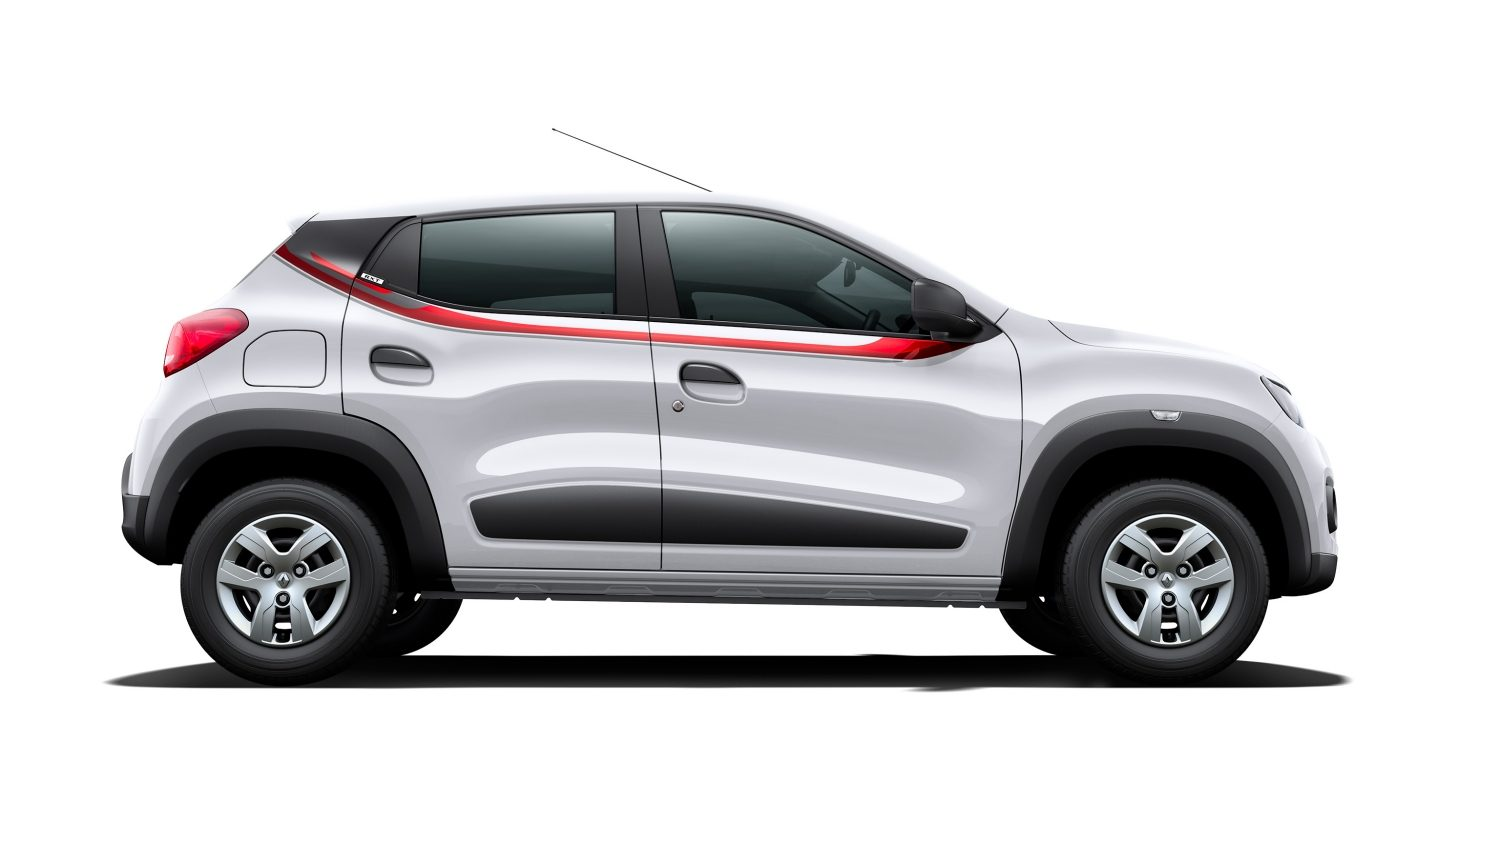 New Renault KWID 1000cc Launched at Rs 3.95 lakhs in India